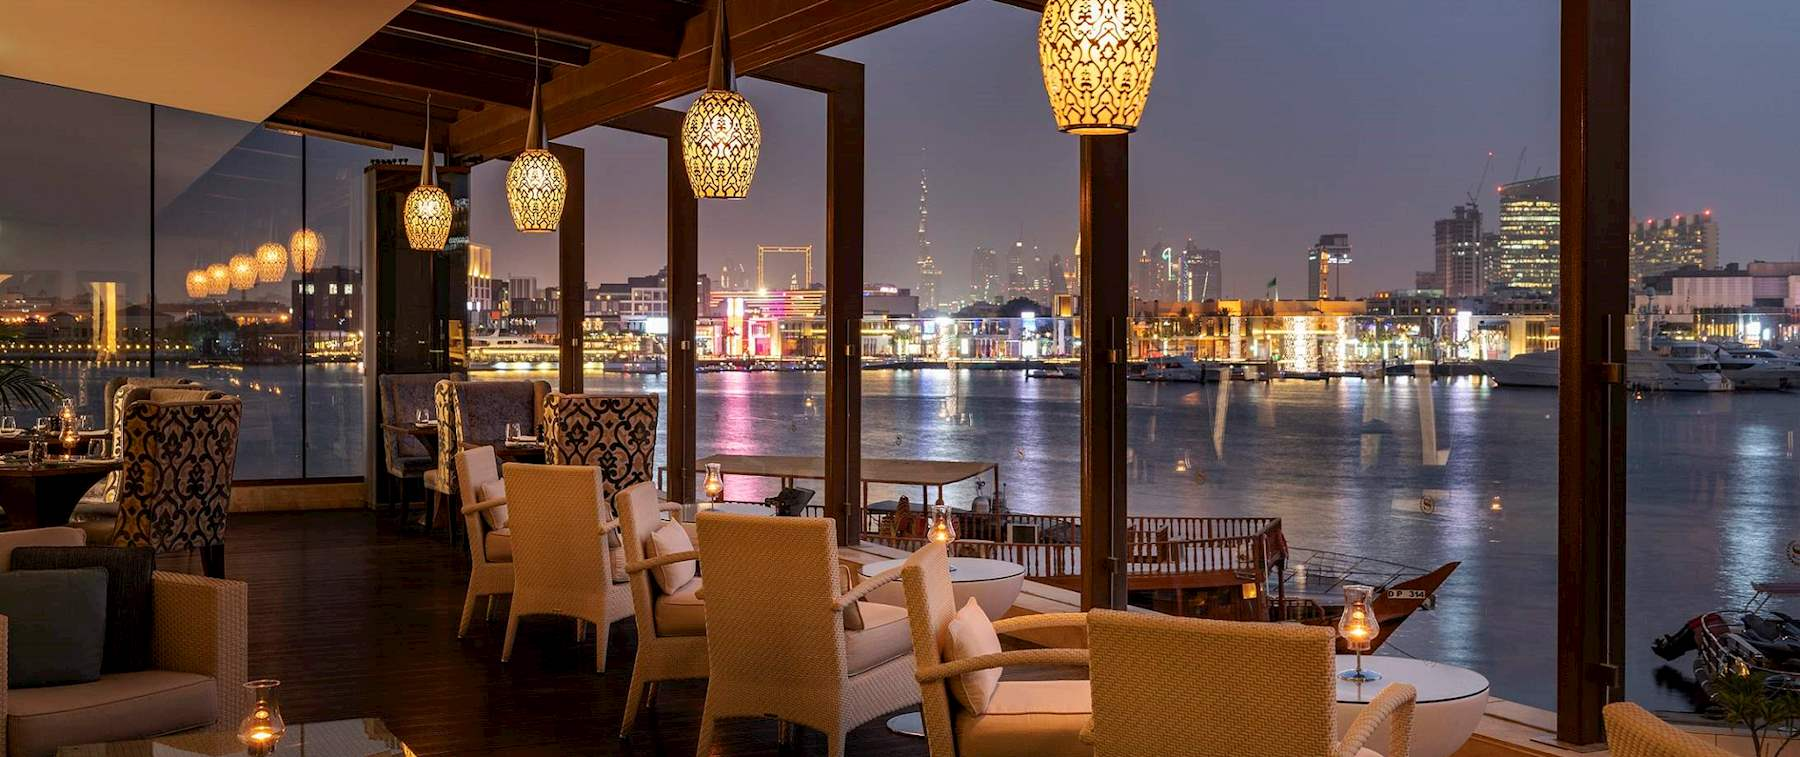 Sunset with delicious drinks during happy hour Vivaldi Dubai